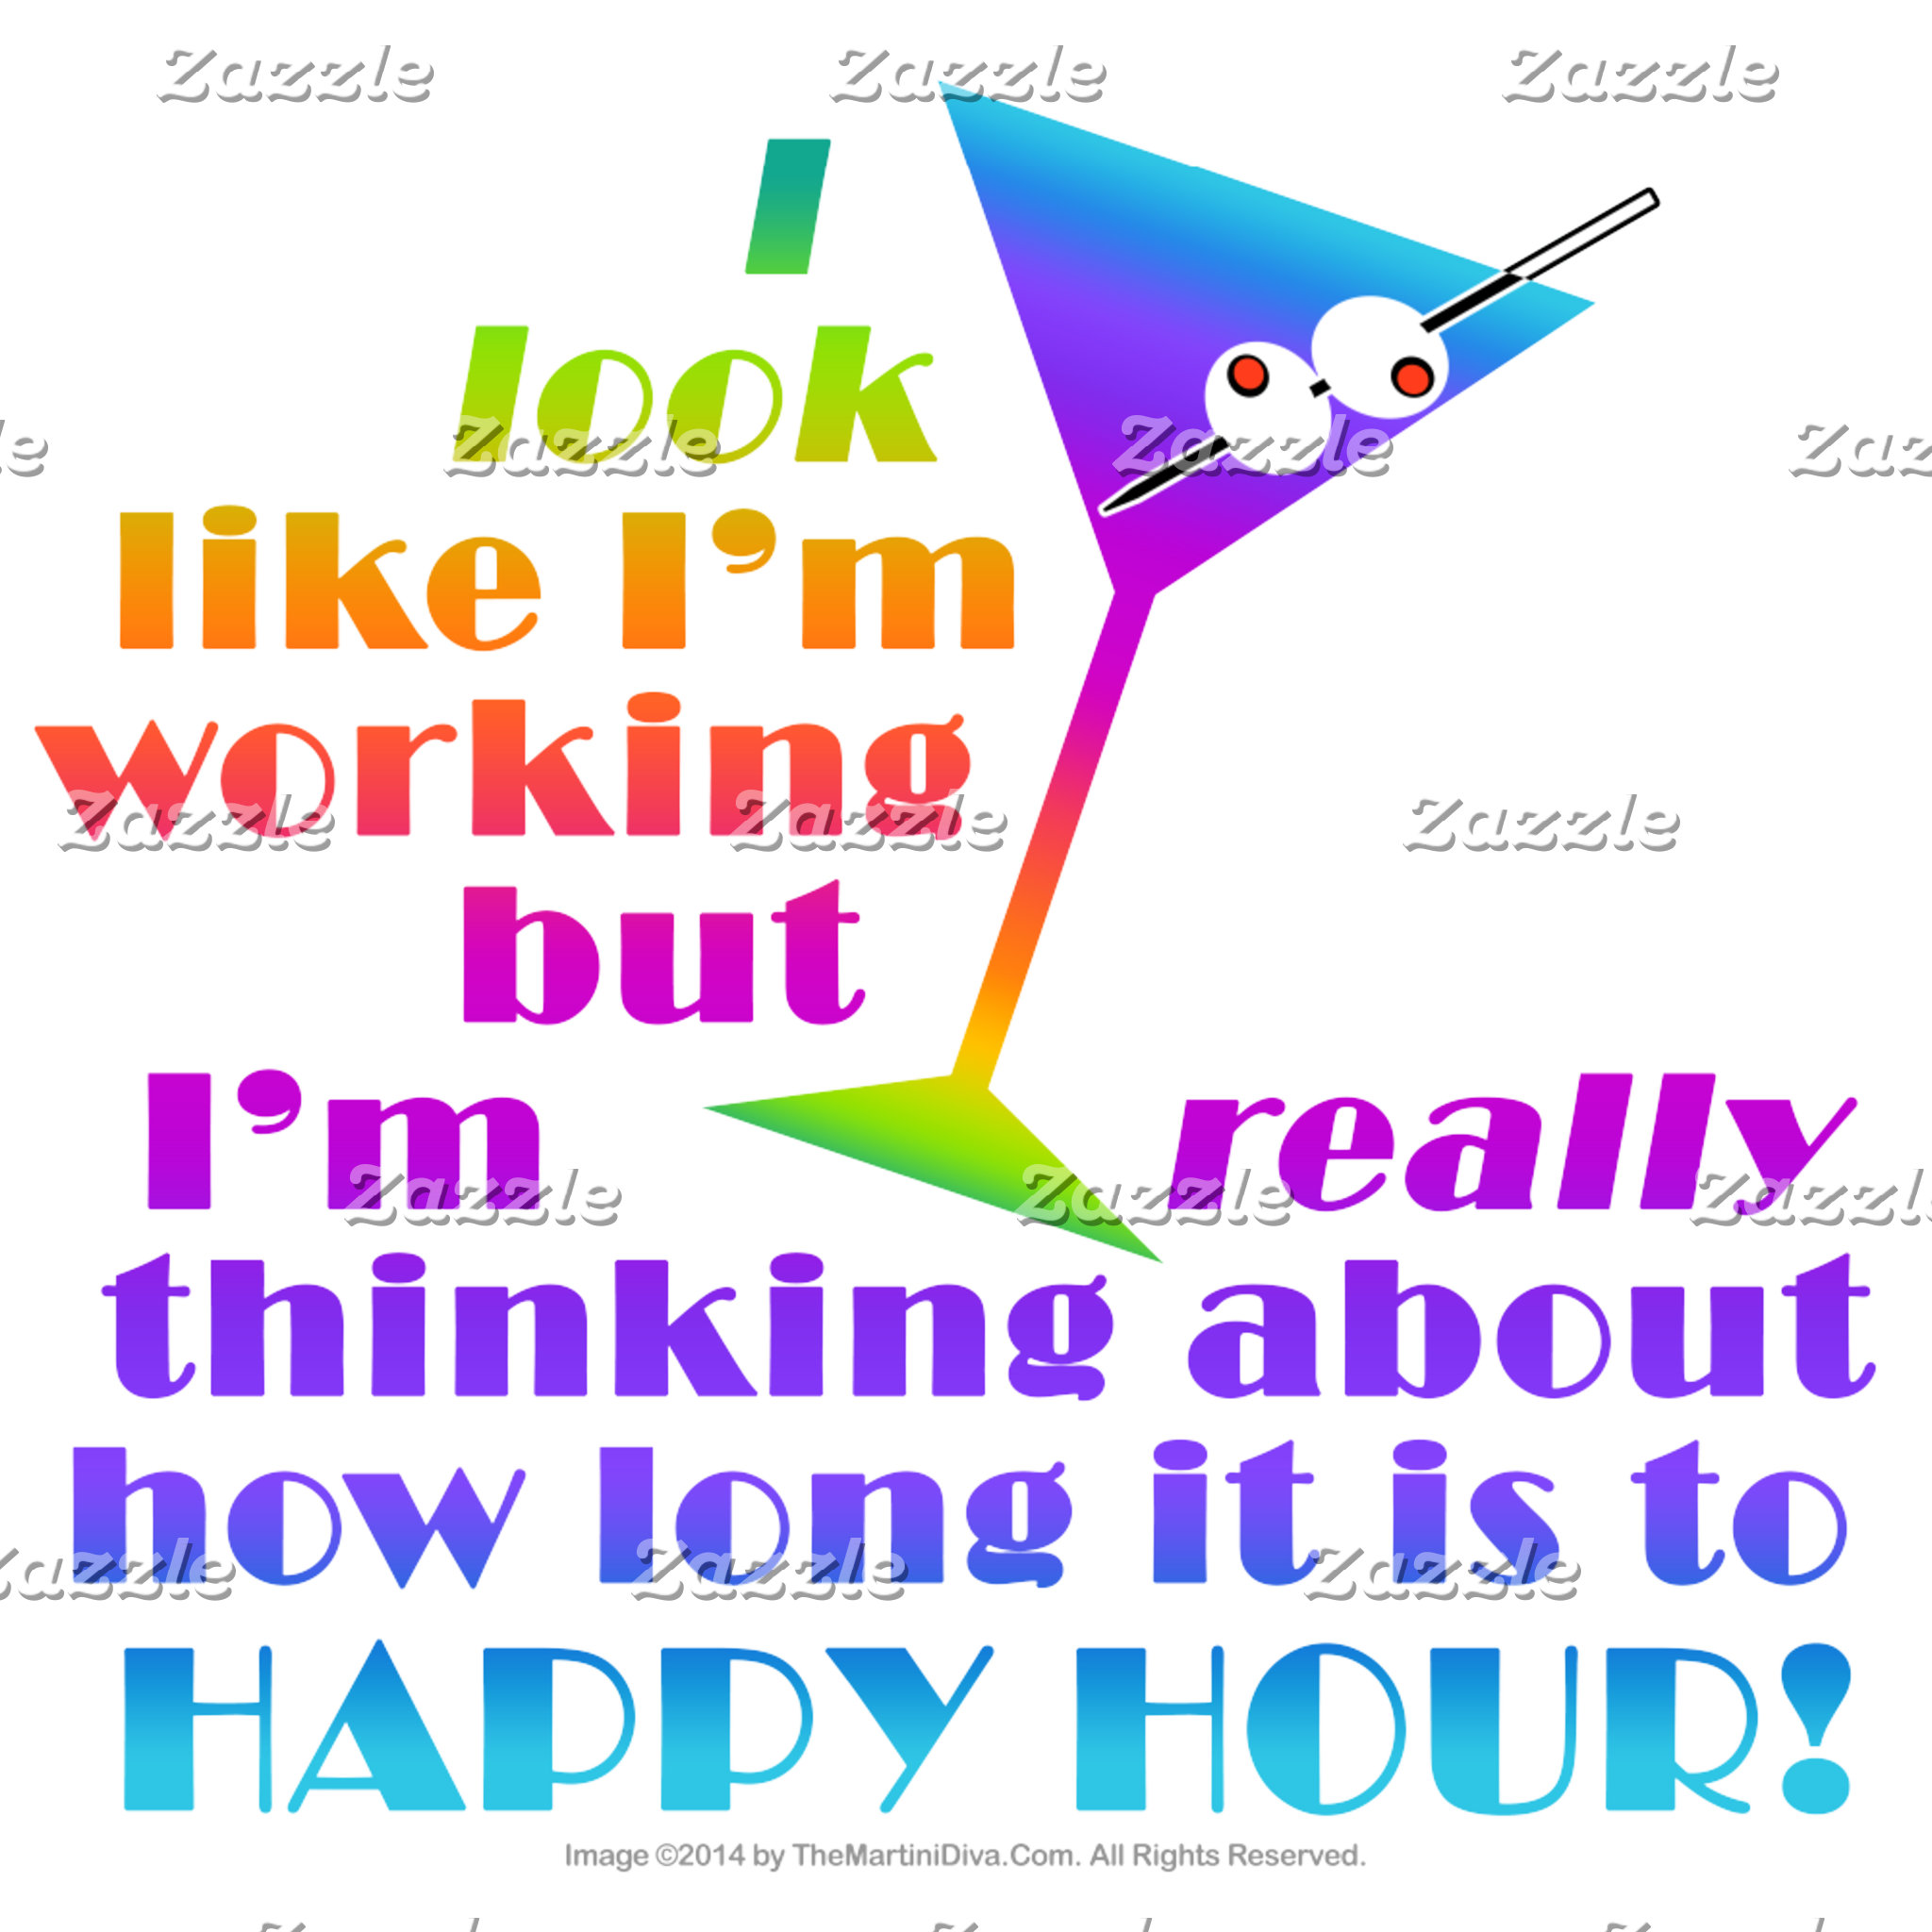 au1 How Long is it to Happy Hour?